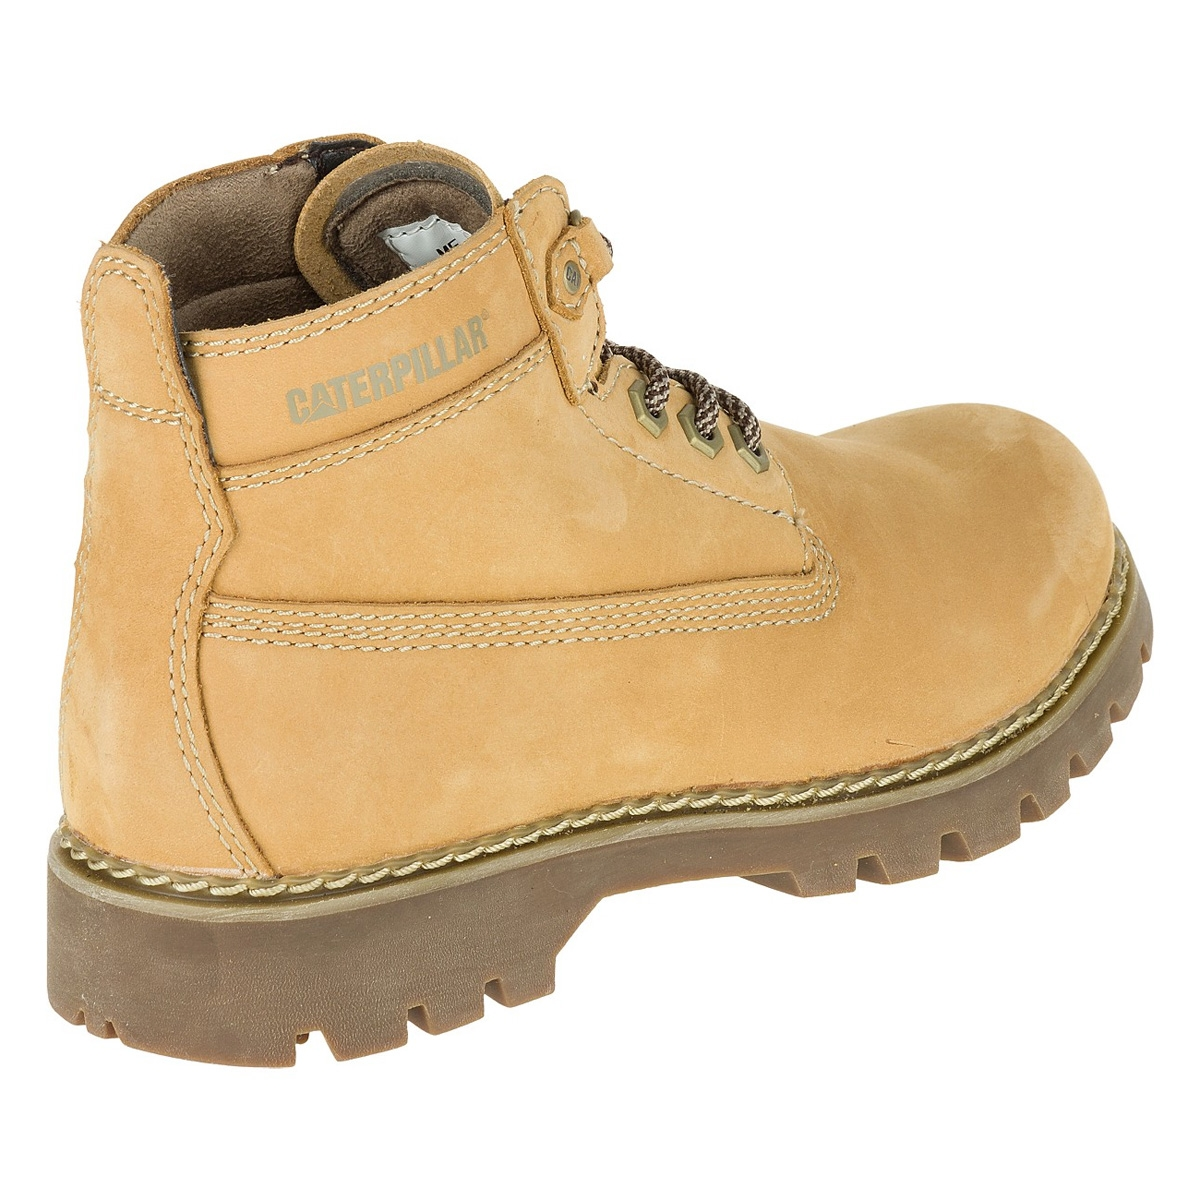 ... Image of CAT Melody Womens Casual Boots (Women s) - Honey Reset ... 87afb872f7